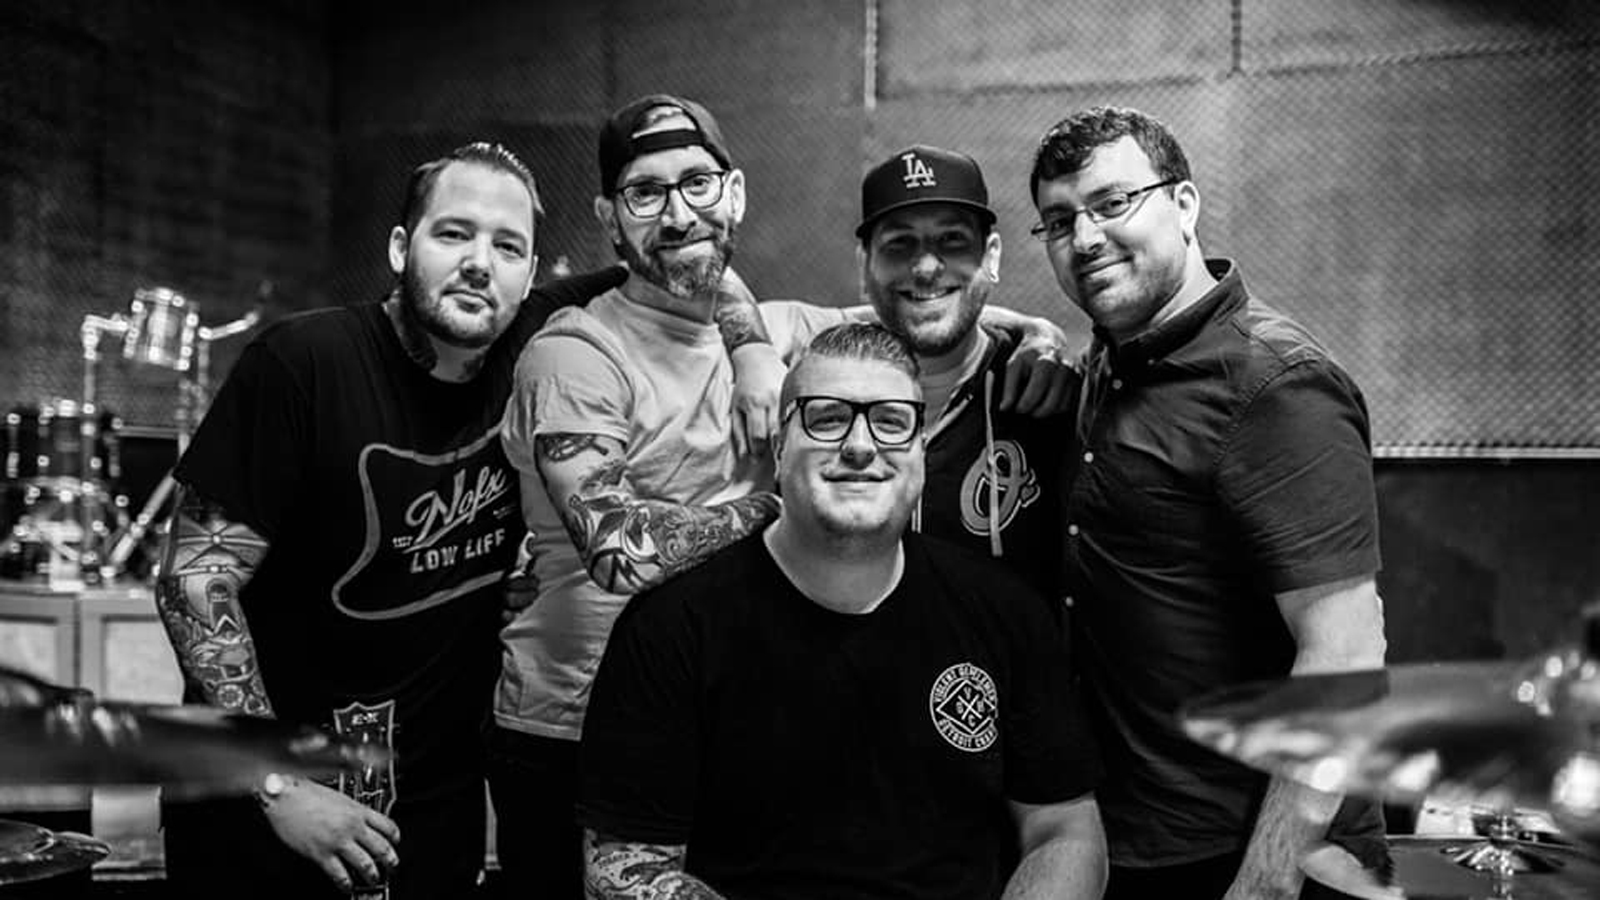 See the Ghost Inside's Triumphant First Performance Since Tragic 2015 Bus Crash